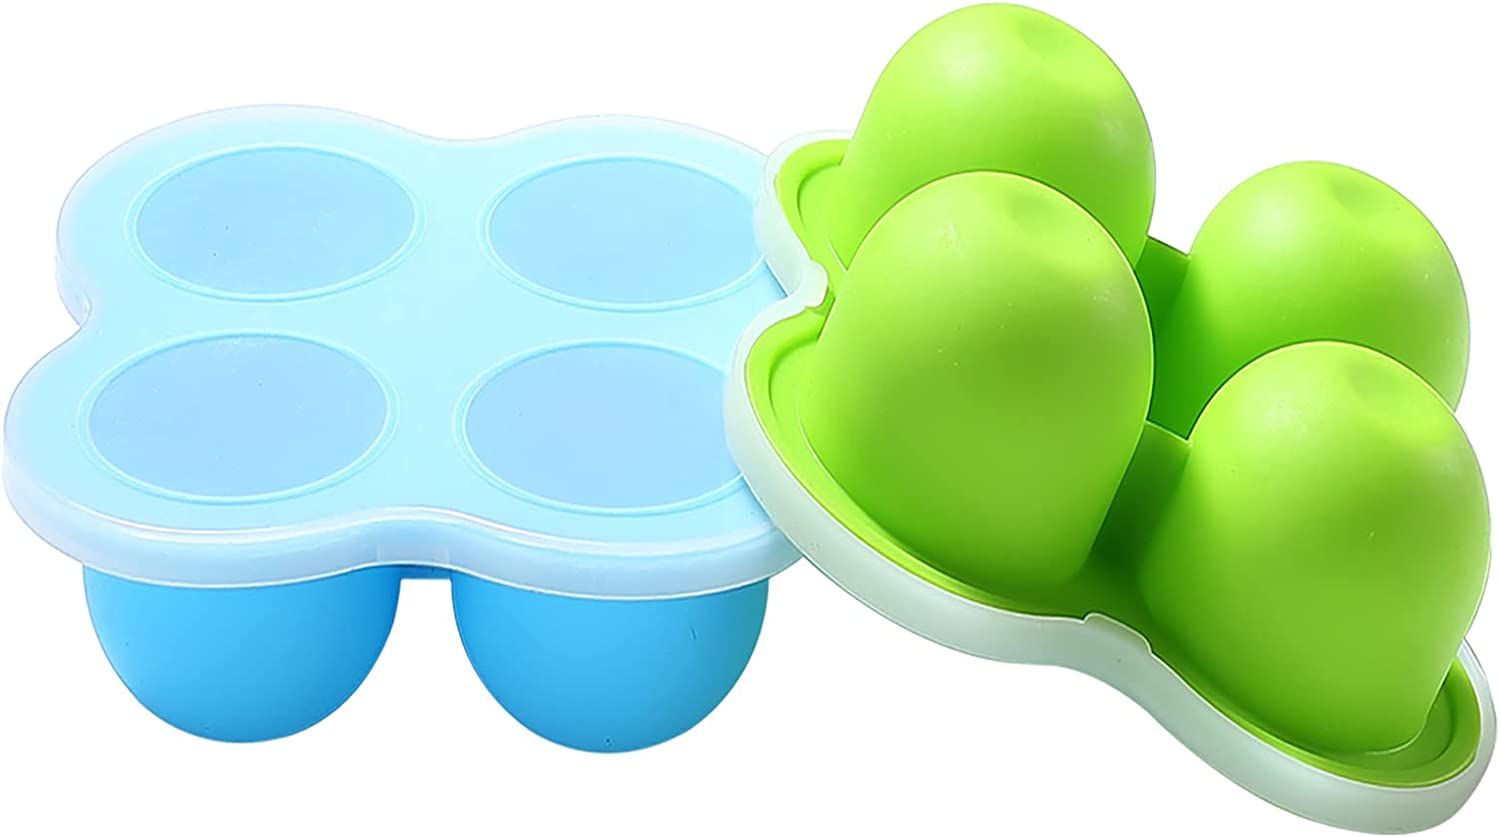 4-Hole Silicone Egg Bites Molds for Instant Pot Accessories 3 Qt by ULEE - Fits Instant Pot 3/5/6/8 Qt Pressure Cooker, Reusable Storage Container with Lid (Blue&Green)